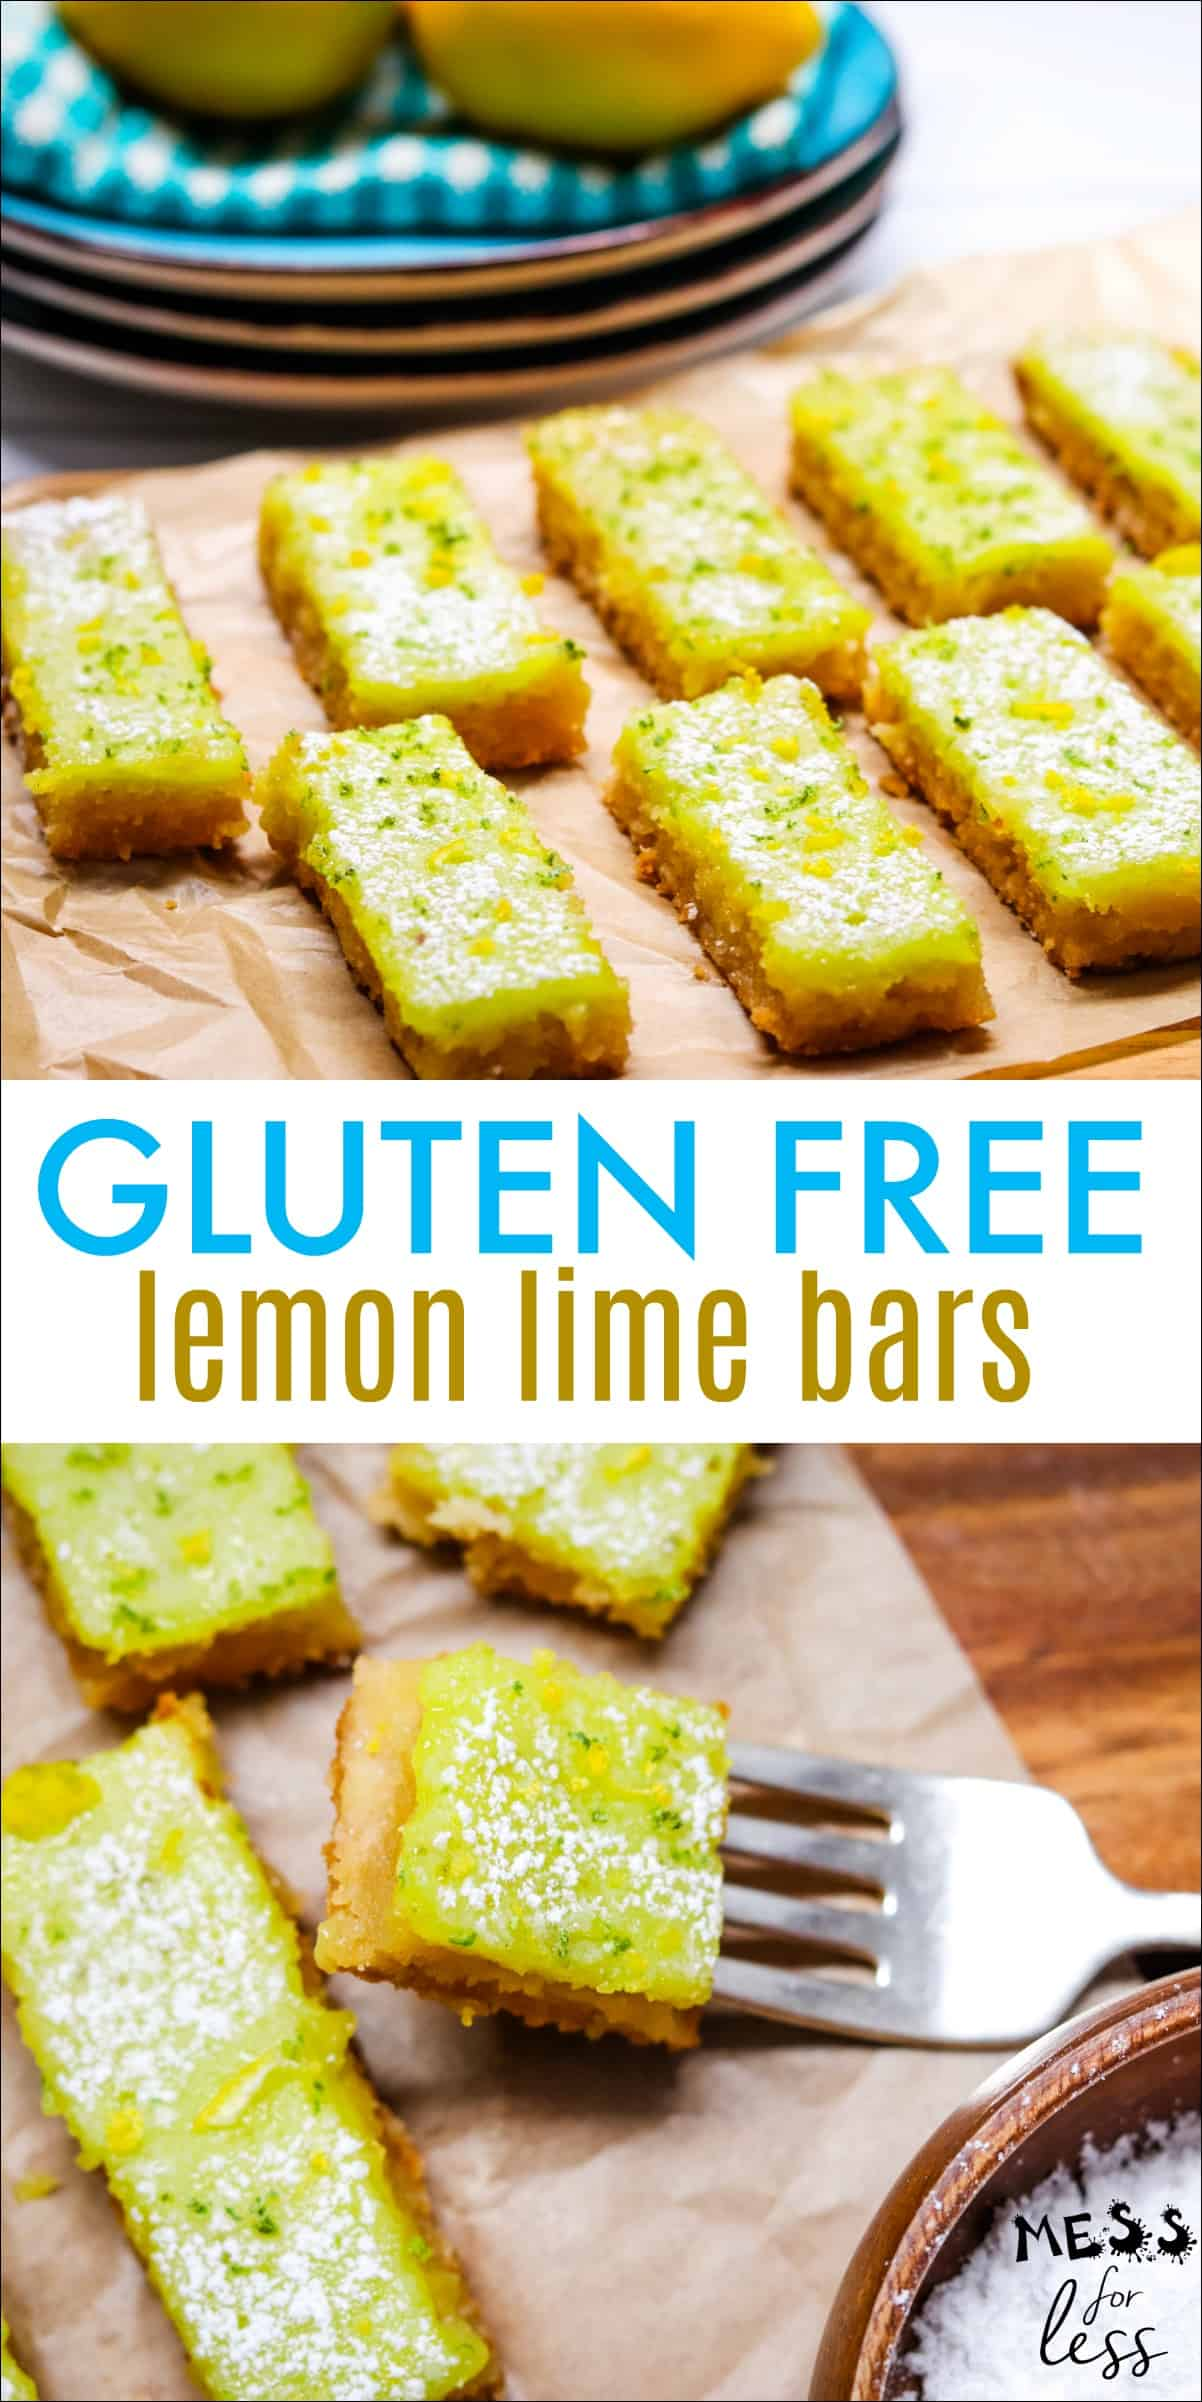 Gluten Free Lemon Lime Bars